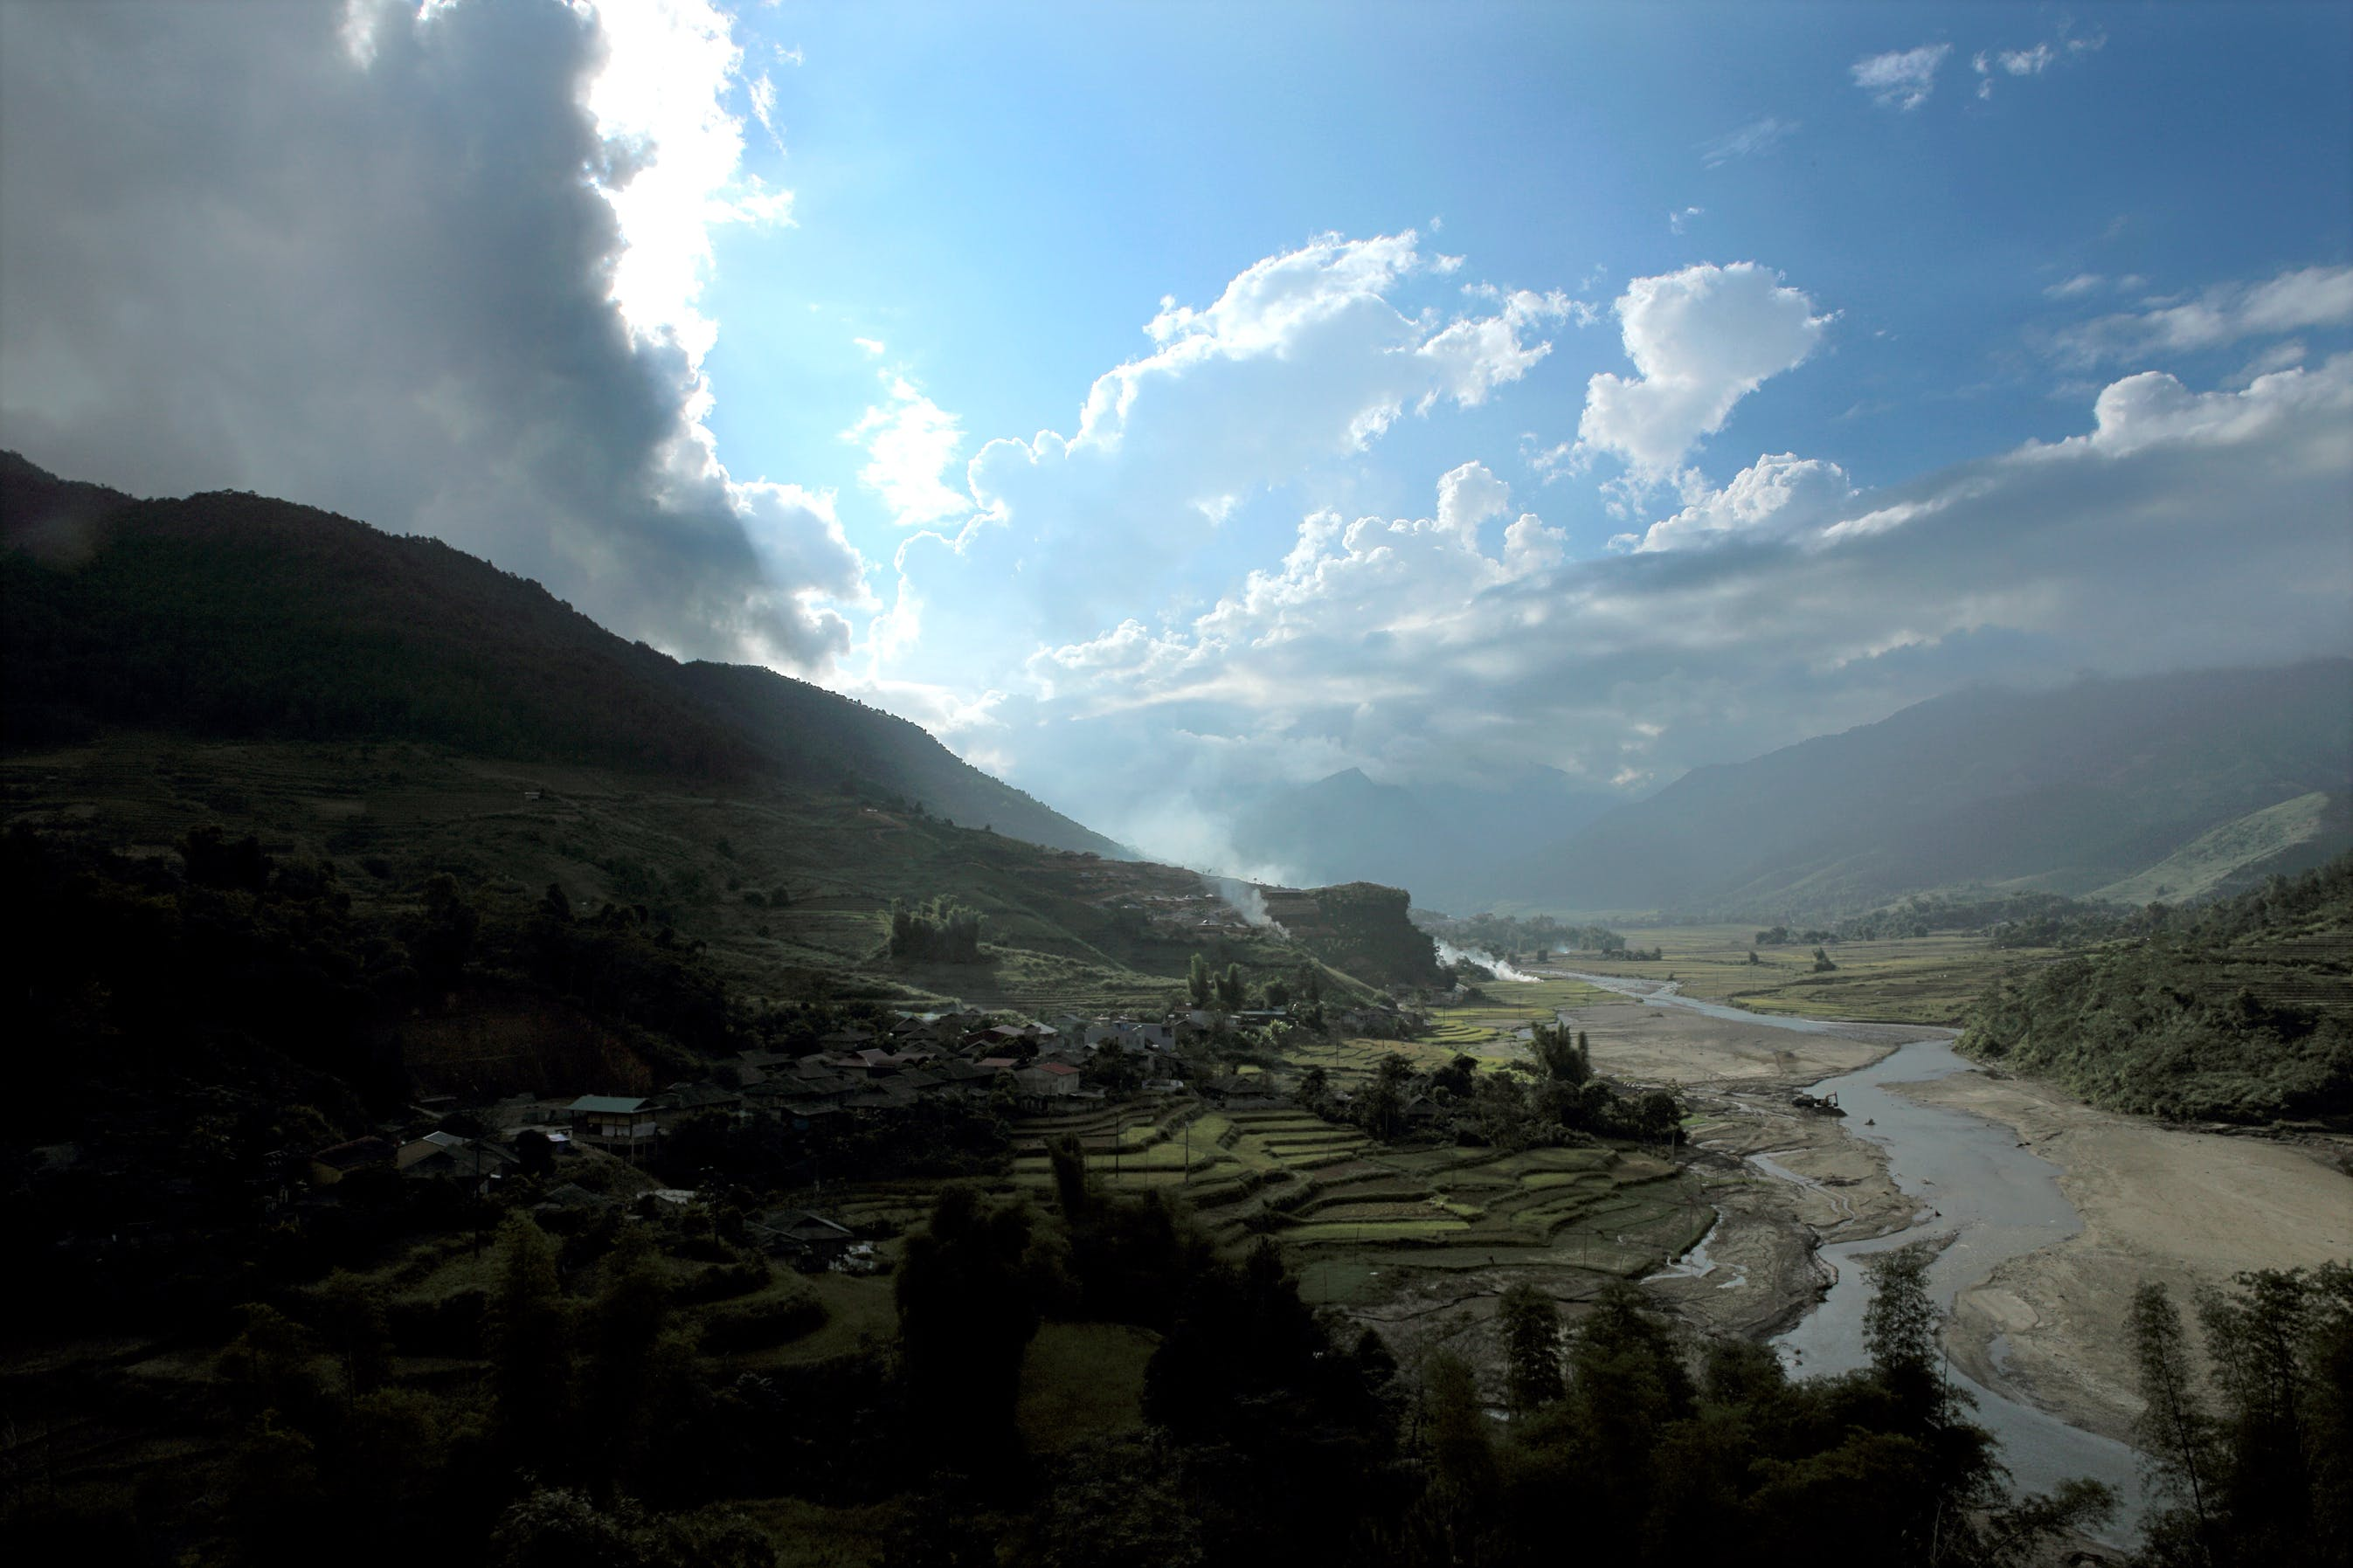 Rice Terraces Under White Clouds and Blue Sky